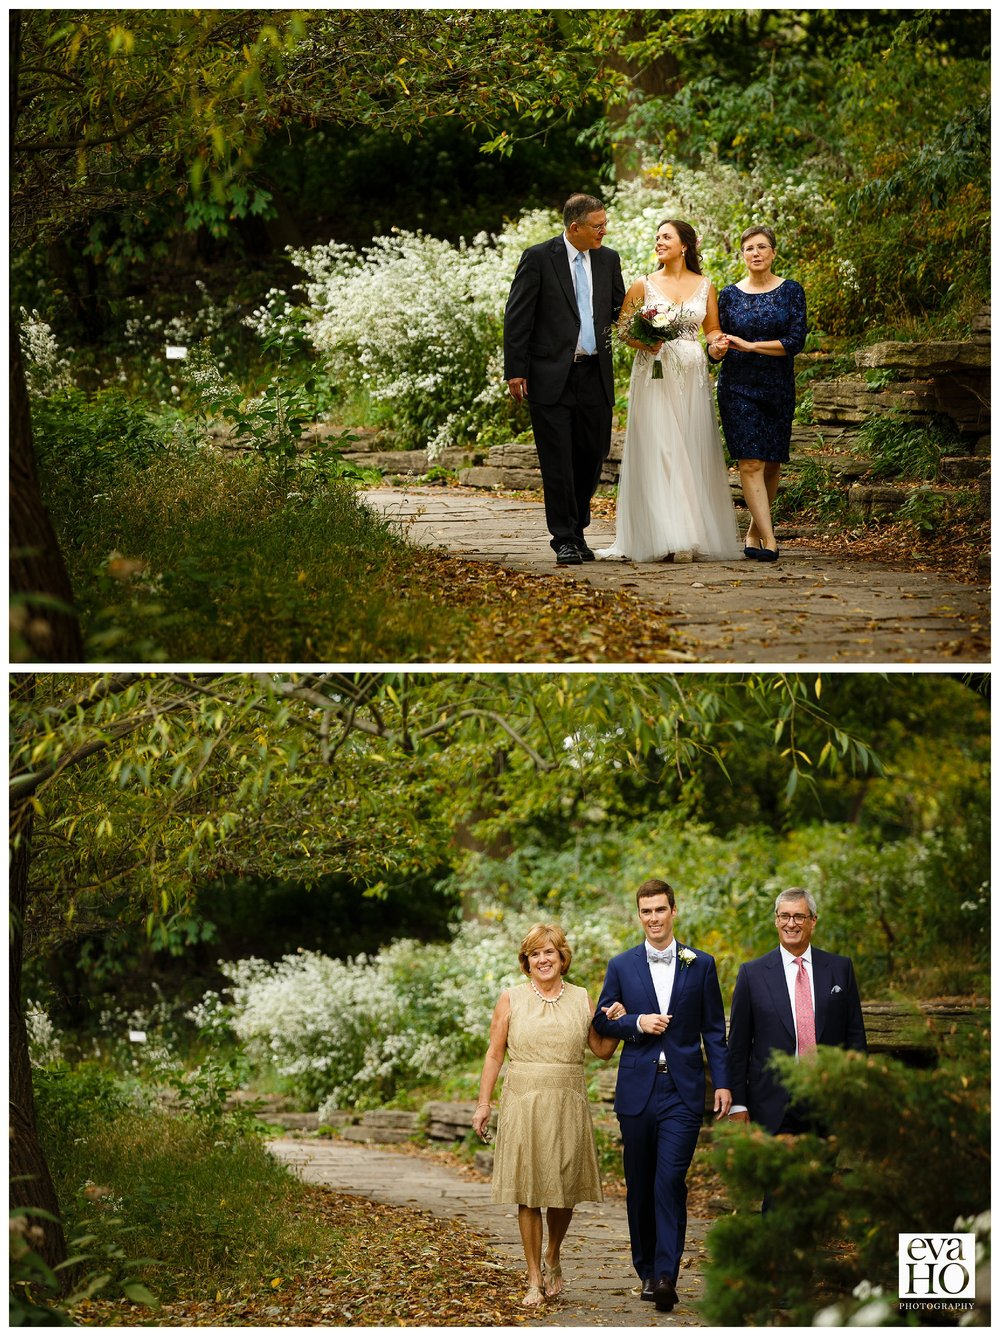 Bride and groom being walking down the aisle by both mother and father